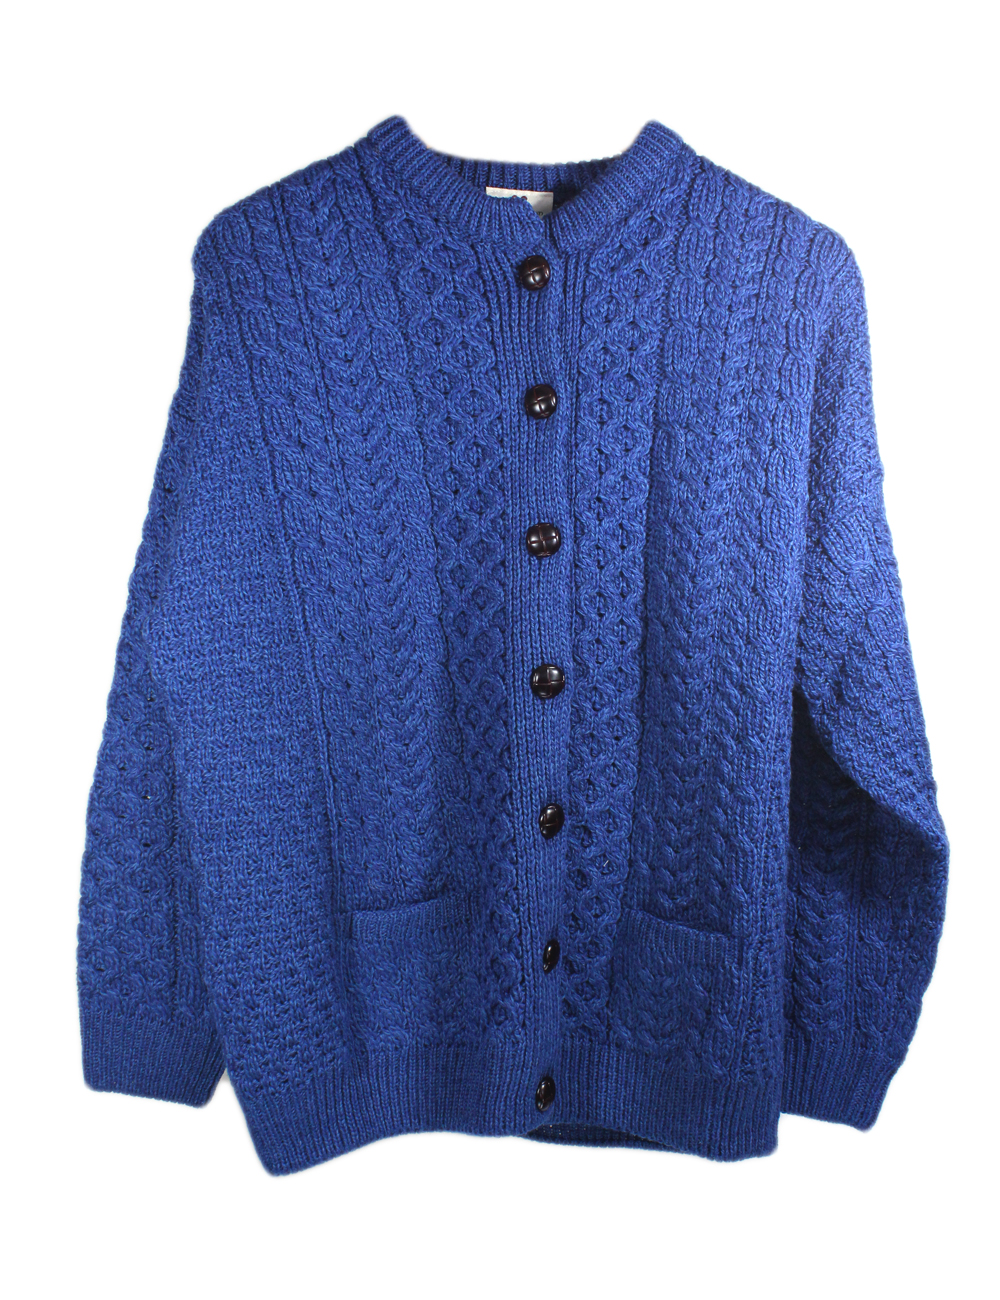 Women'S Merino Wool Irish Aran Knit Long Cardigan Sweater 108